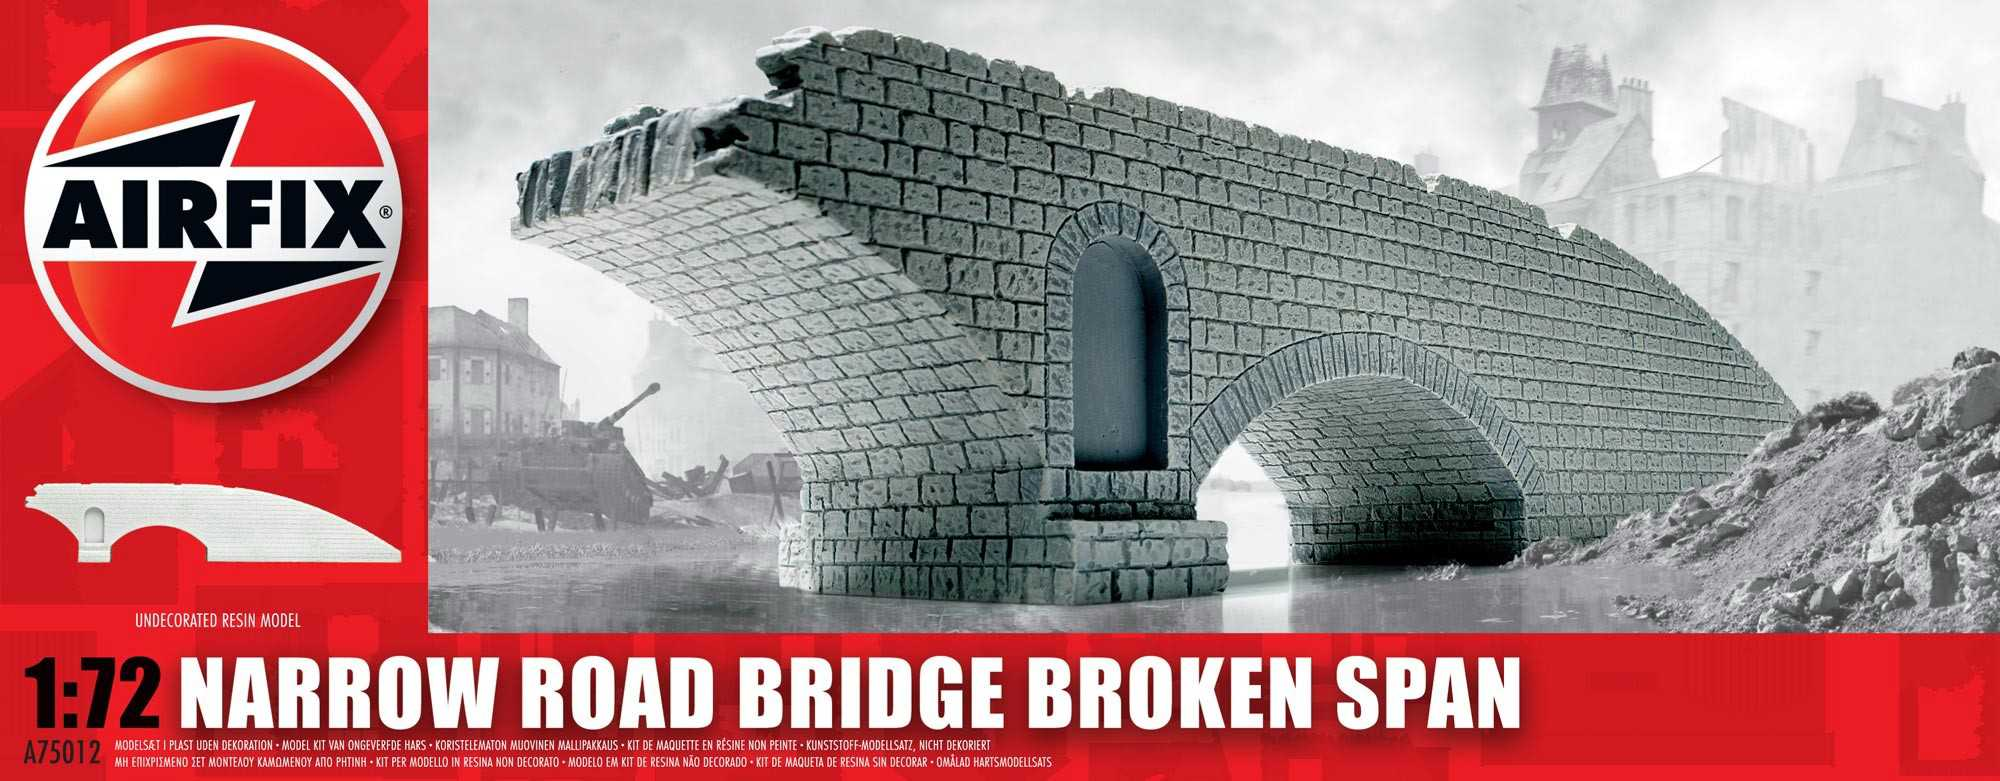 1:720 Narrow Road Bridge Broken Span